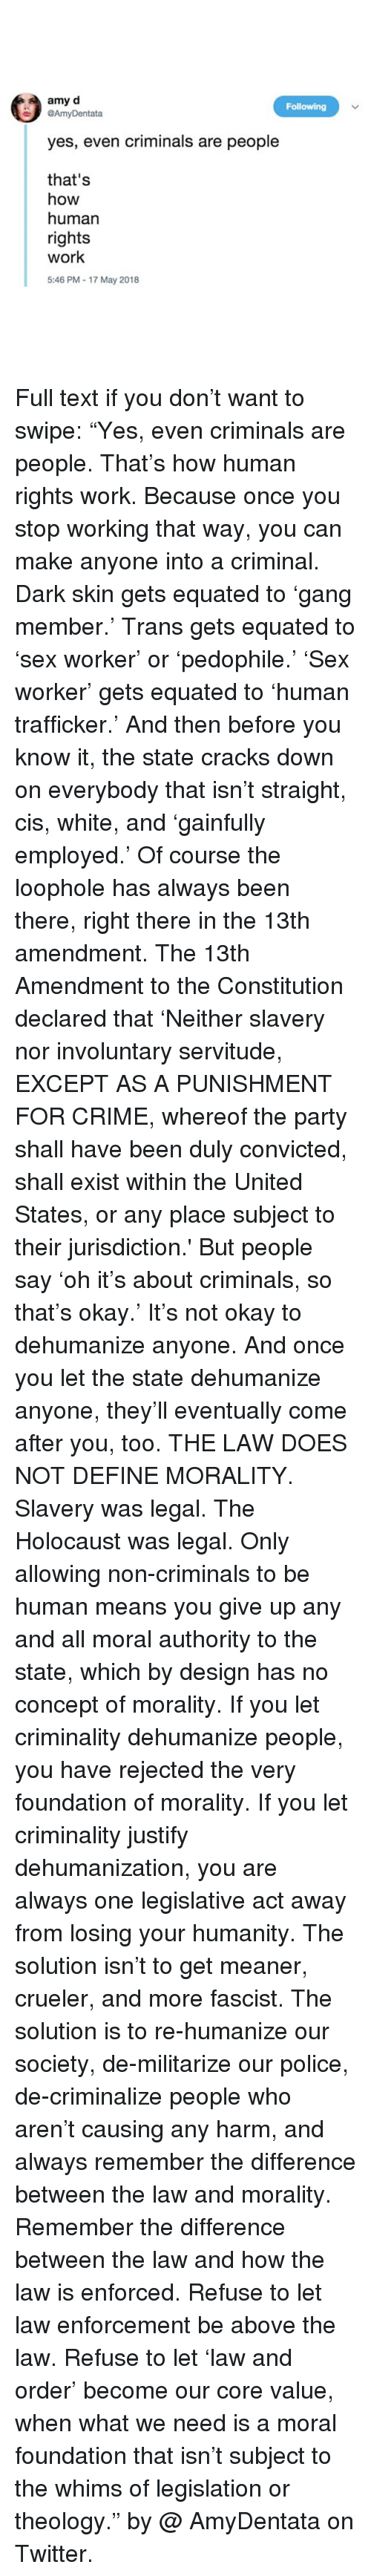 "Theology: amy d  @AmyDentata  Following  yes, even criminals are people  that's  how  human  rights  work  5:46 PM - 17 May 2018 Full text if you don't want to swipe: ""Yes, even criminals are people. That's how human rights work. Because once you stop working that way, you can make anyone into a criminal. Dark skin gets equated to 'gang member.' Trans gets equated to 'sex worker' or 'pedophile.' 'Sex worker' gets equated to 'human trafficker.' And then before you know it, the state cracks down on everybody that isn't straight, cis, white, and 'gainfully employed.' Of course the loophole has always been there, right there in the 13th amendment. The 13th Amendment to the Constitution declared that 'Neither slavery nor involuntary servitude, EXCEPT AS A PUNISHMENT FOR CRIME, whereof the party shall have been duly convicted, shall exist within the United States, or any place subject to their jurisdiction.' But people say 'oh it's about criminals, so that's okay.' It's not okay to dehumanize anyone. And once you let the state dehumanize anyone, they'll eventually come after you, too. THE LAW DOES NOT DEFINE MORALITY. Slavery was legal. The Holocaust was legal. Only allowing non-criminals to be human means you give up any and all moral authority to the state, which by design has no concept of morality. If you let criminality dehumanize people, you have rejected the very foundation of morality. If you let criminality justify dehumanization, you are always one legislative act away from losing your humanity. The solution isn't to get meaner, crueler, and more fascist. The solution is to re-humanize our society, de-militarize our police, de-criminalize people who aren't causing any harm, and always remember the difference between the law and morality. Remember the difference between the law and how the law is enforced. Refuse to let law enforcement be above the law. Refuse to let 'law and order' become our core value, when what we need is a moral foundation that isn't subject to the whims of legislation or theology."" by @ AmyDentata on Twitter."